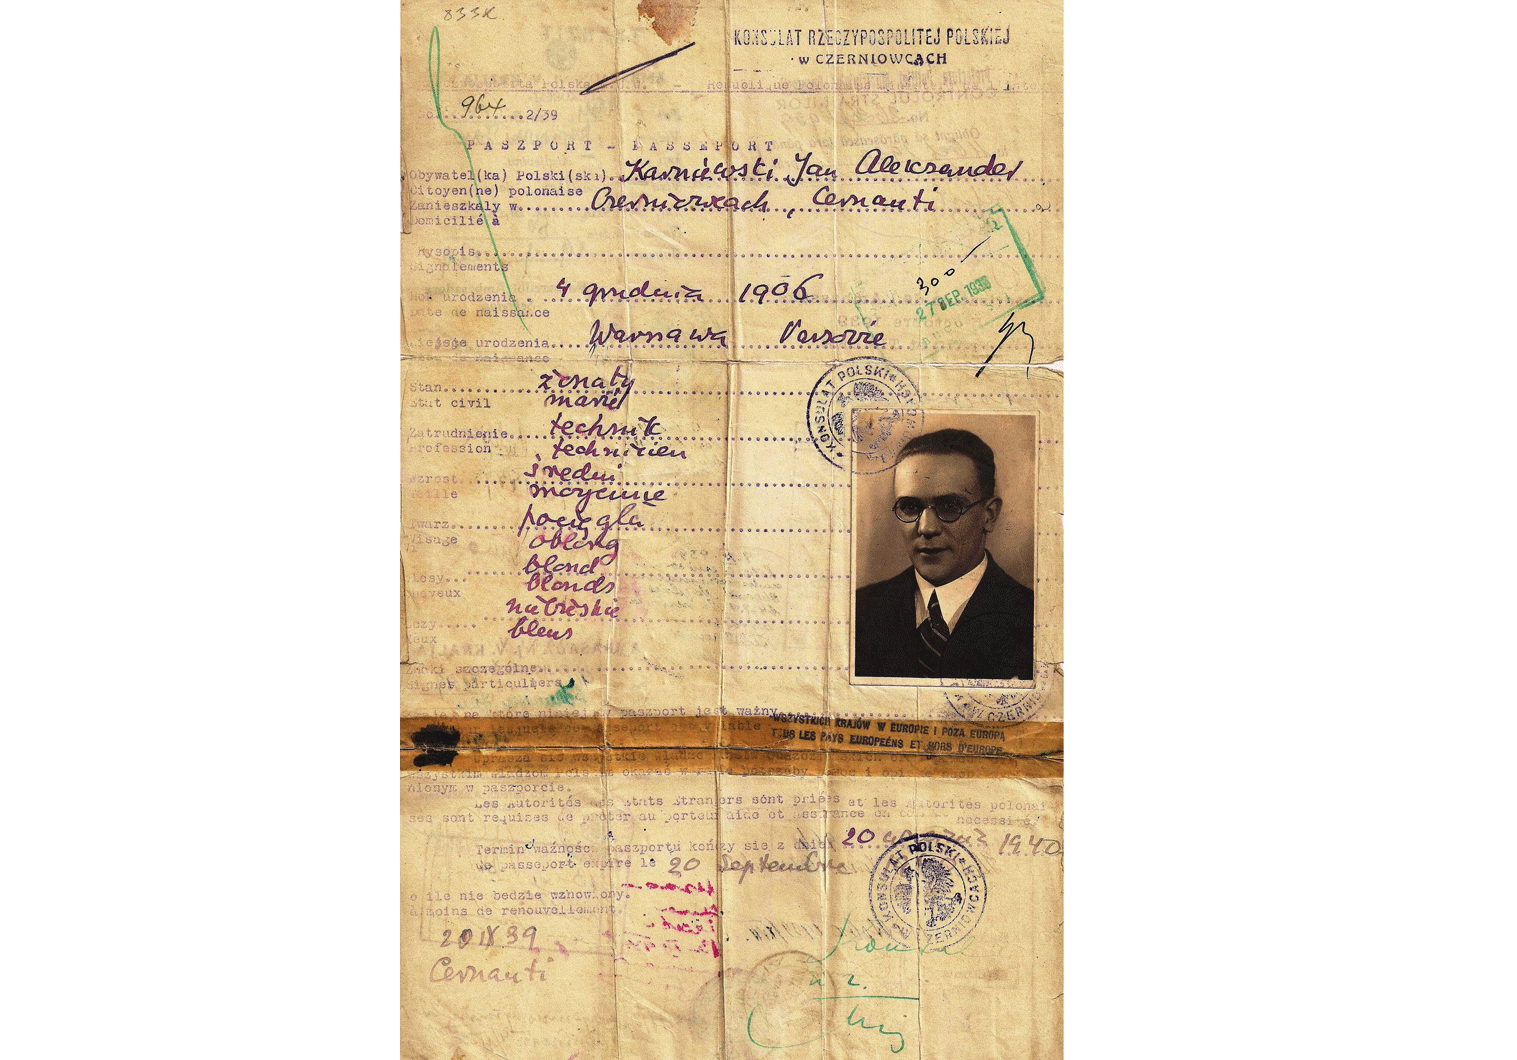 WWII Polish emergency passports